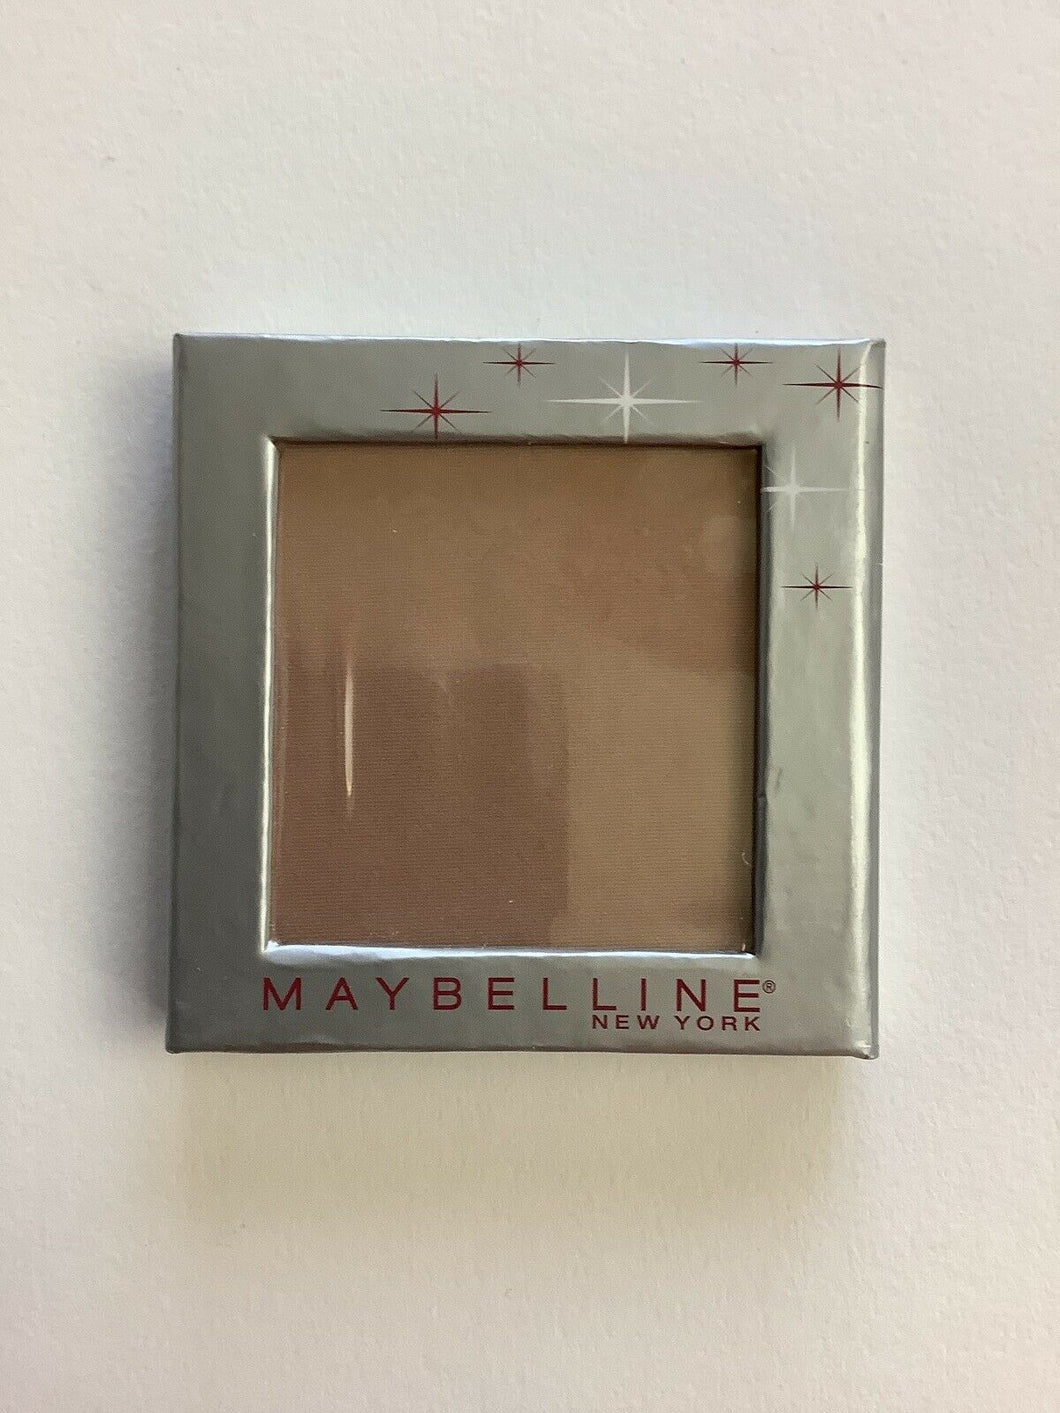 Maybelline Pressed Shimmer Powder - Snowflake Shimmer ($7 Incl Tax)